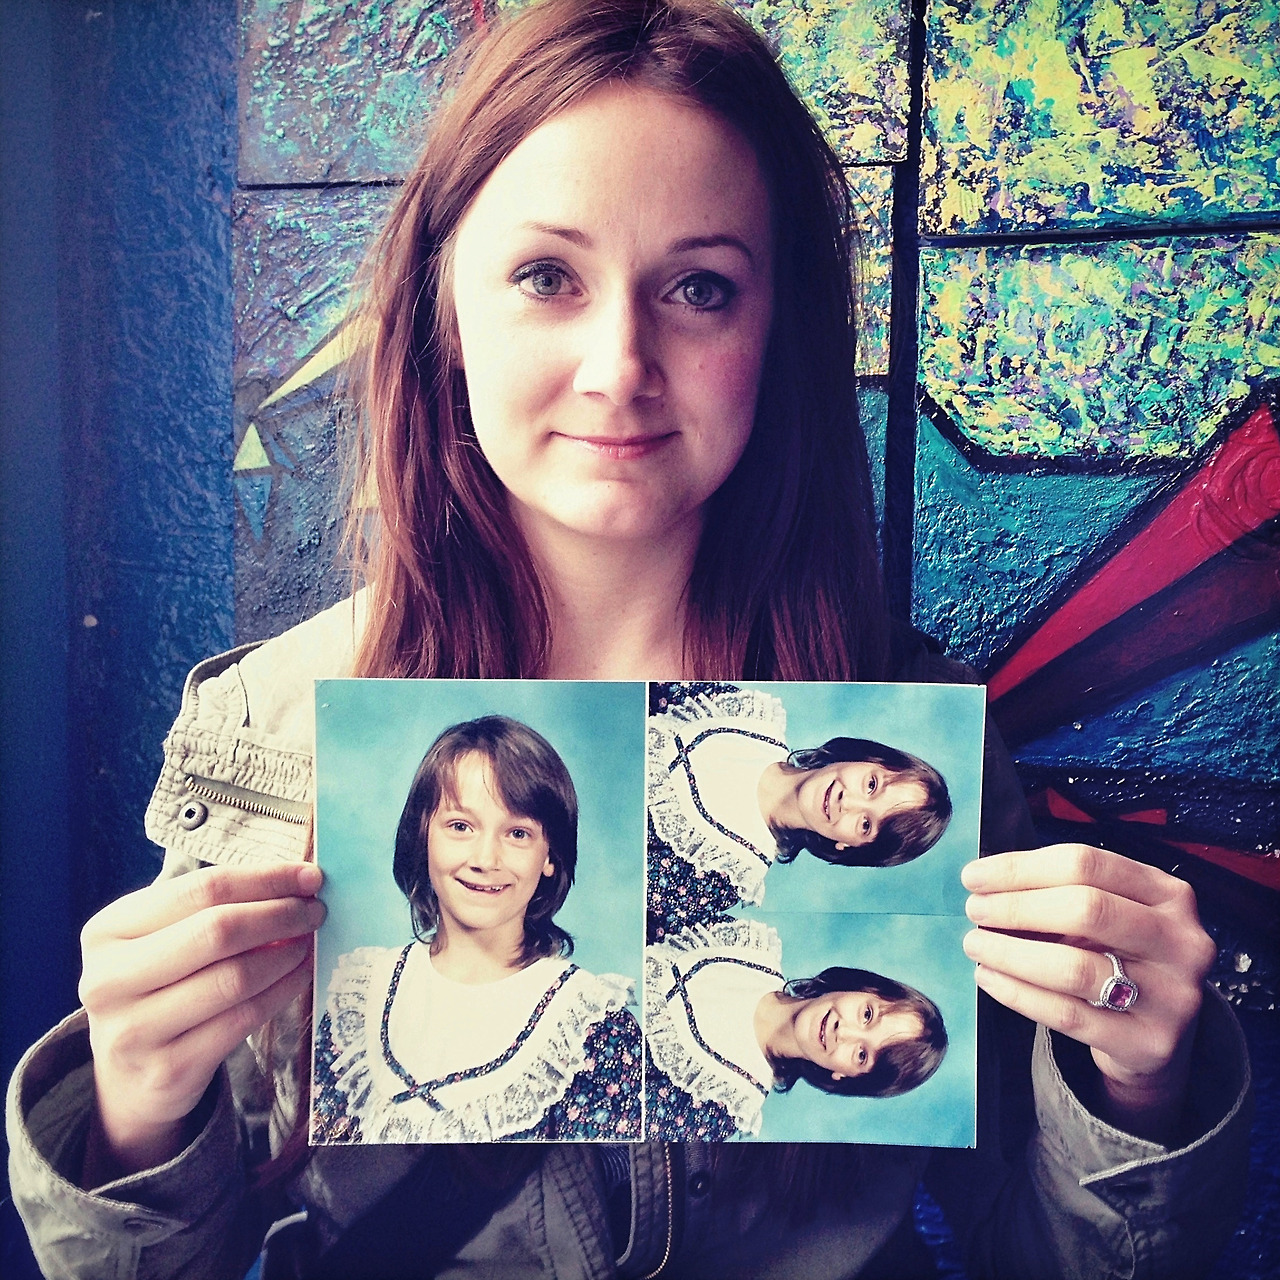 Gina, 10 ans sur la photo, aujourd'hui 32 - Photo : Awkward Years Project